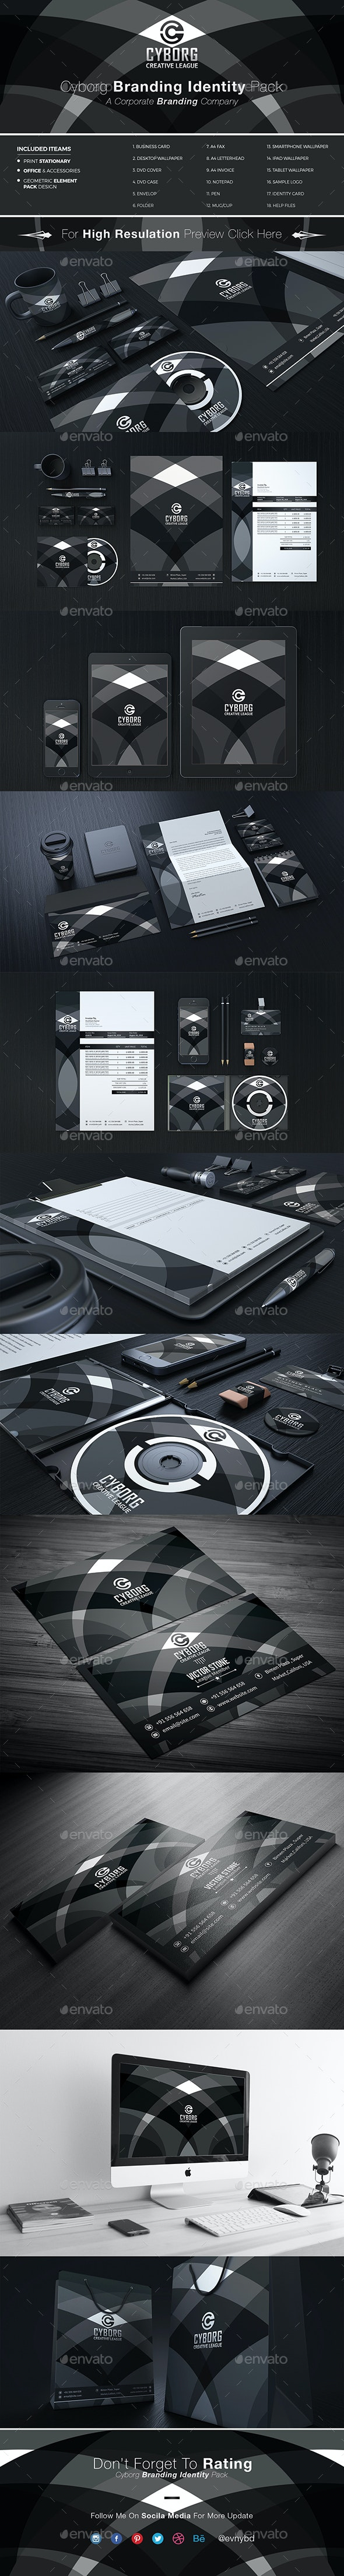 Cyborg Corporate Identity - Stationery Print Templates